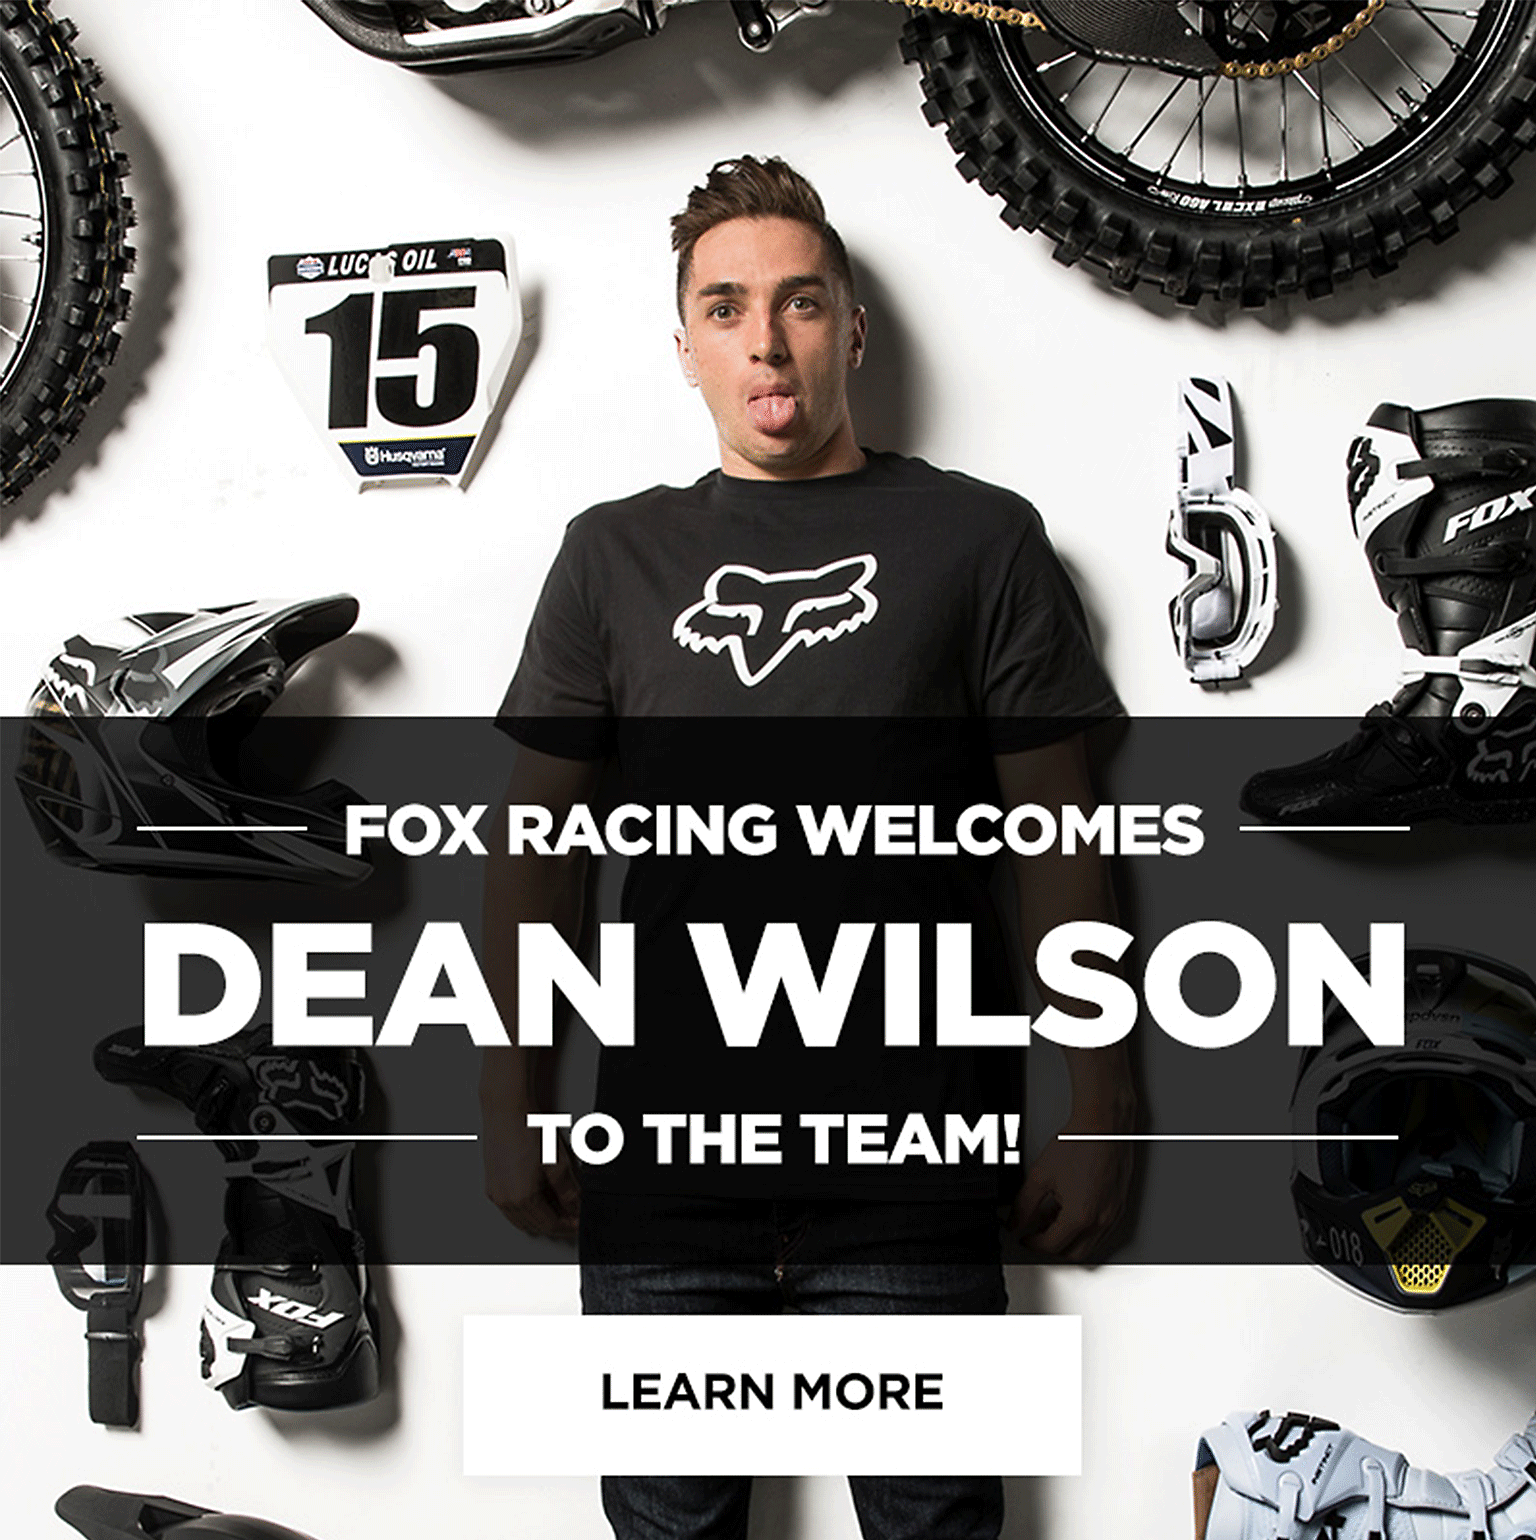 Fox Racing Welcomes Dean Wilson to the team